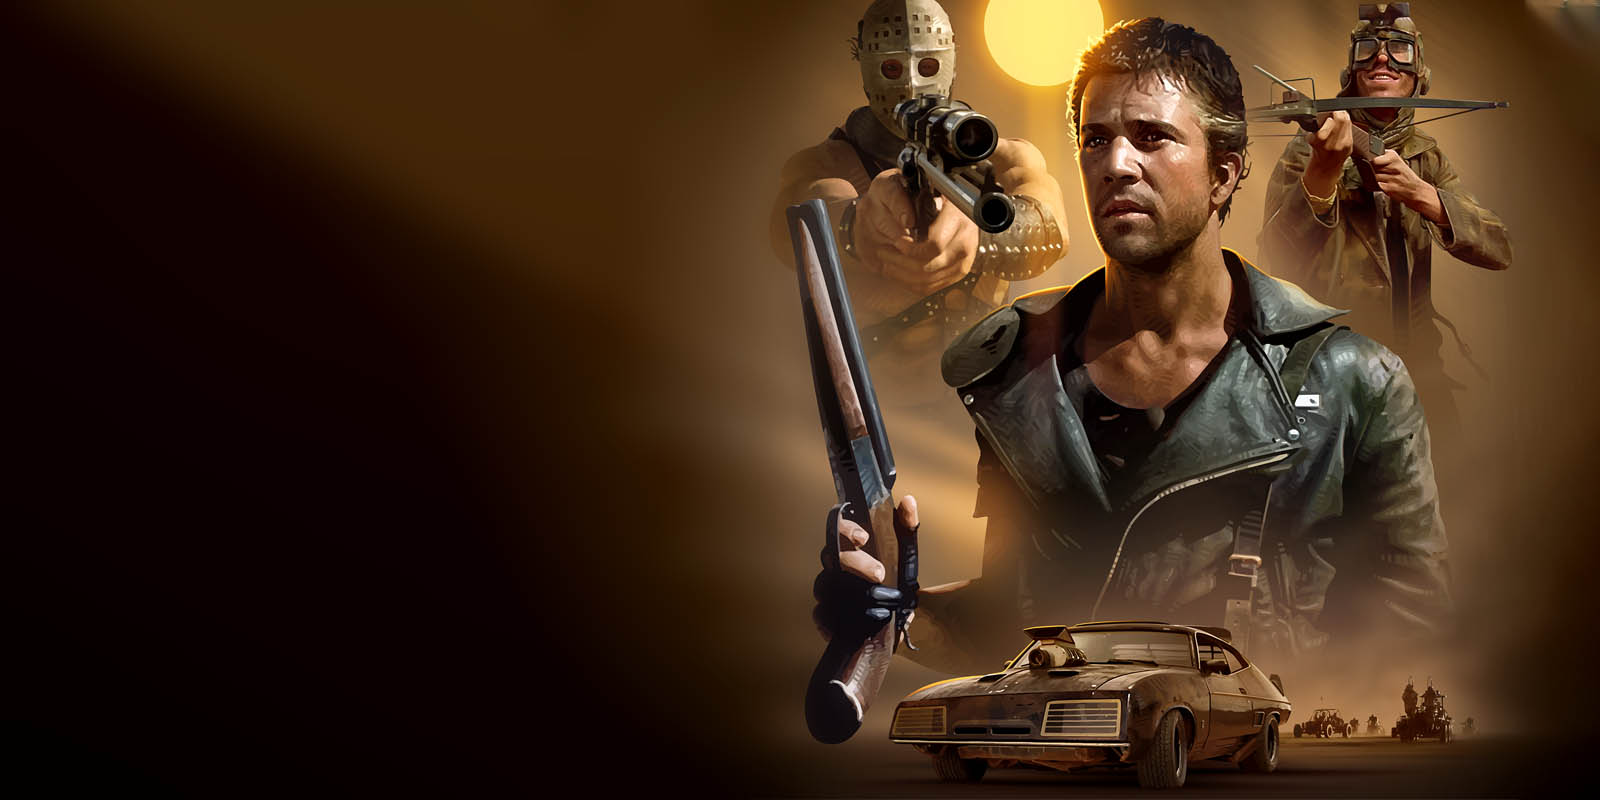 BANNER MAD MAX 2